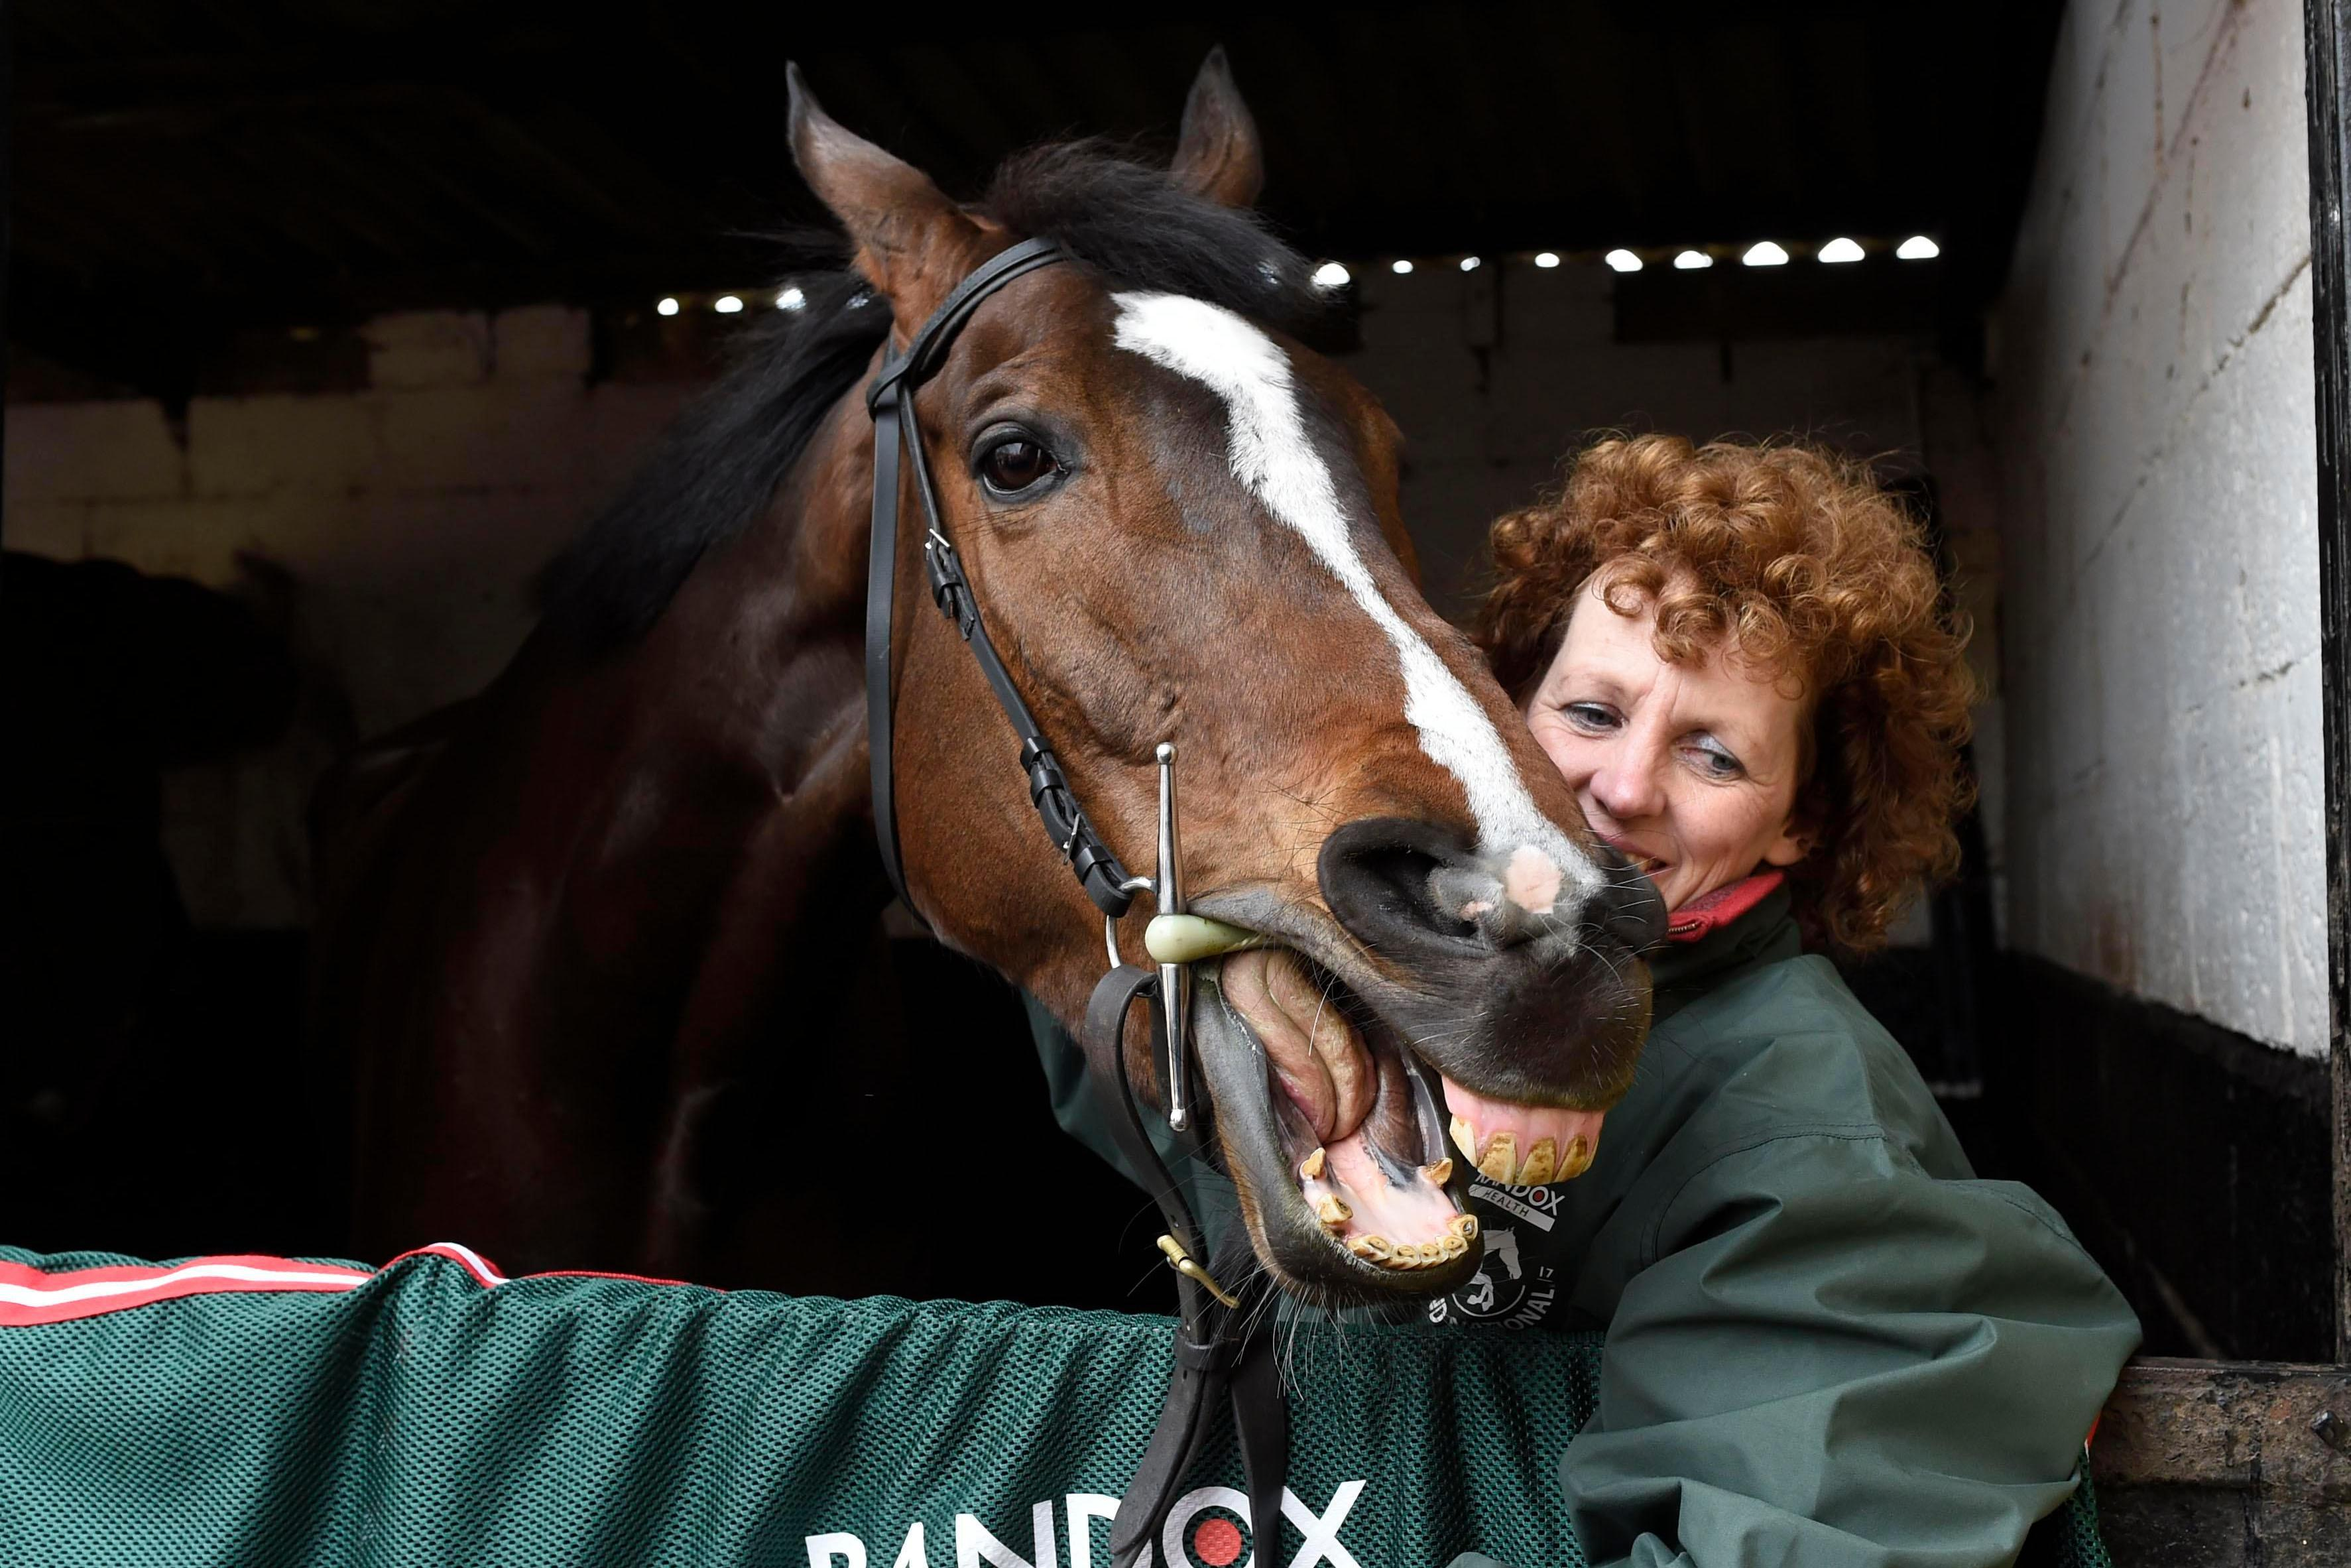 Grand National winner One For Arthur as good as ever reports trainer Lucinda Russell ahead of Aintree return